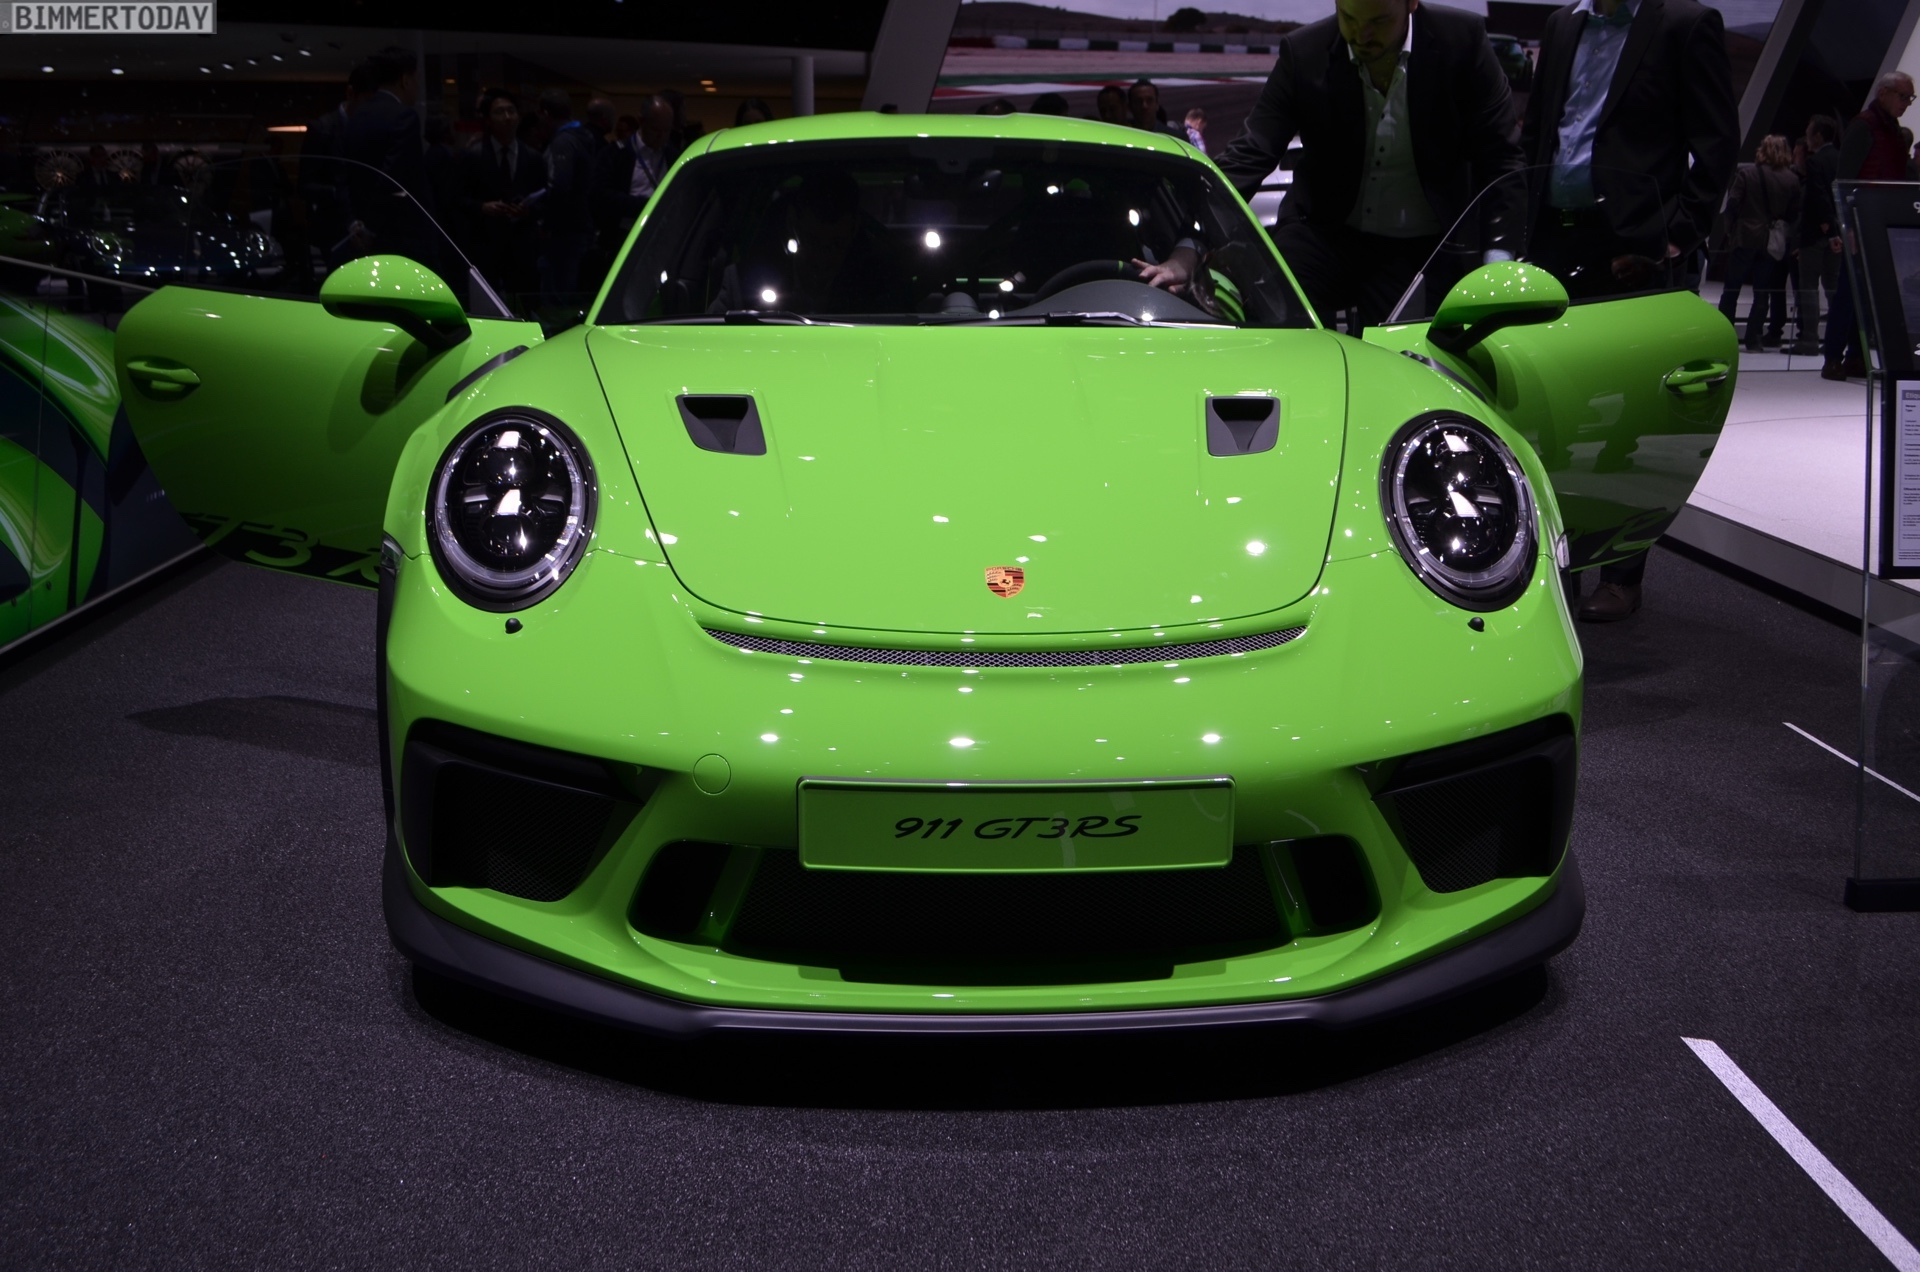 2018 Geneva Live Photos Of The Porsche 911 Gt3 Rs 991 2